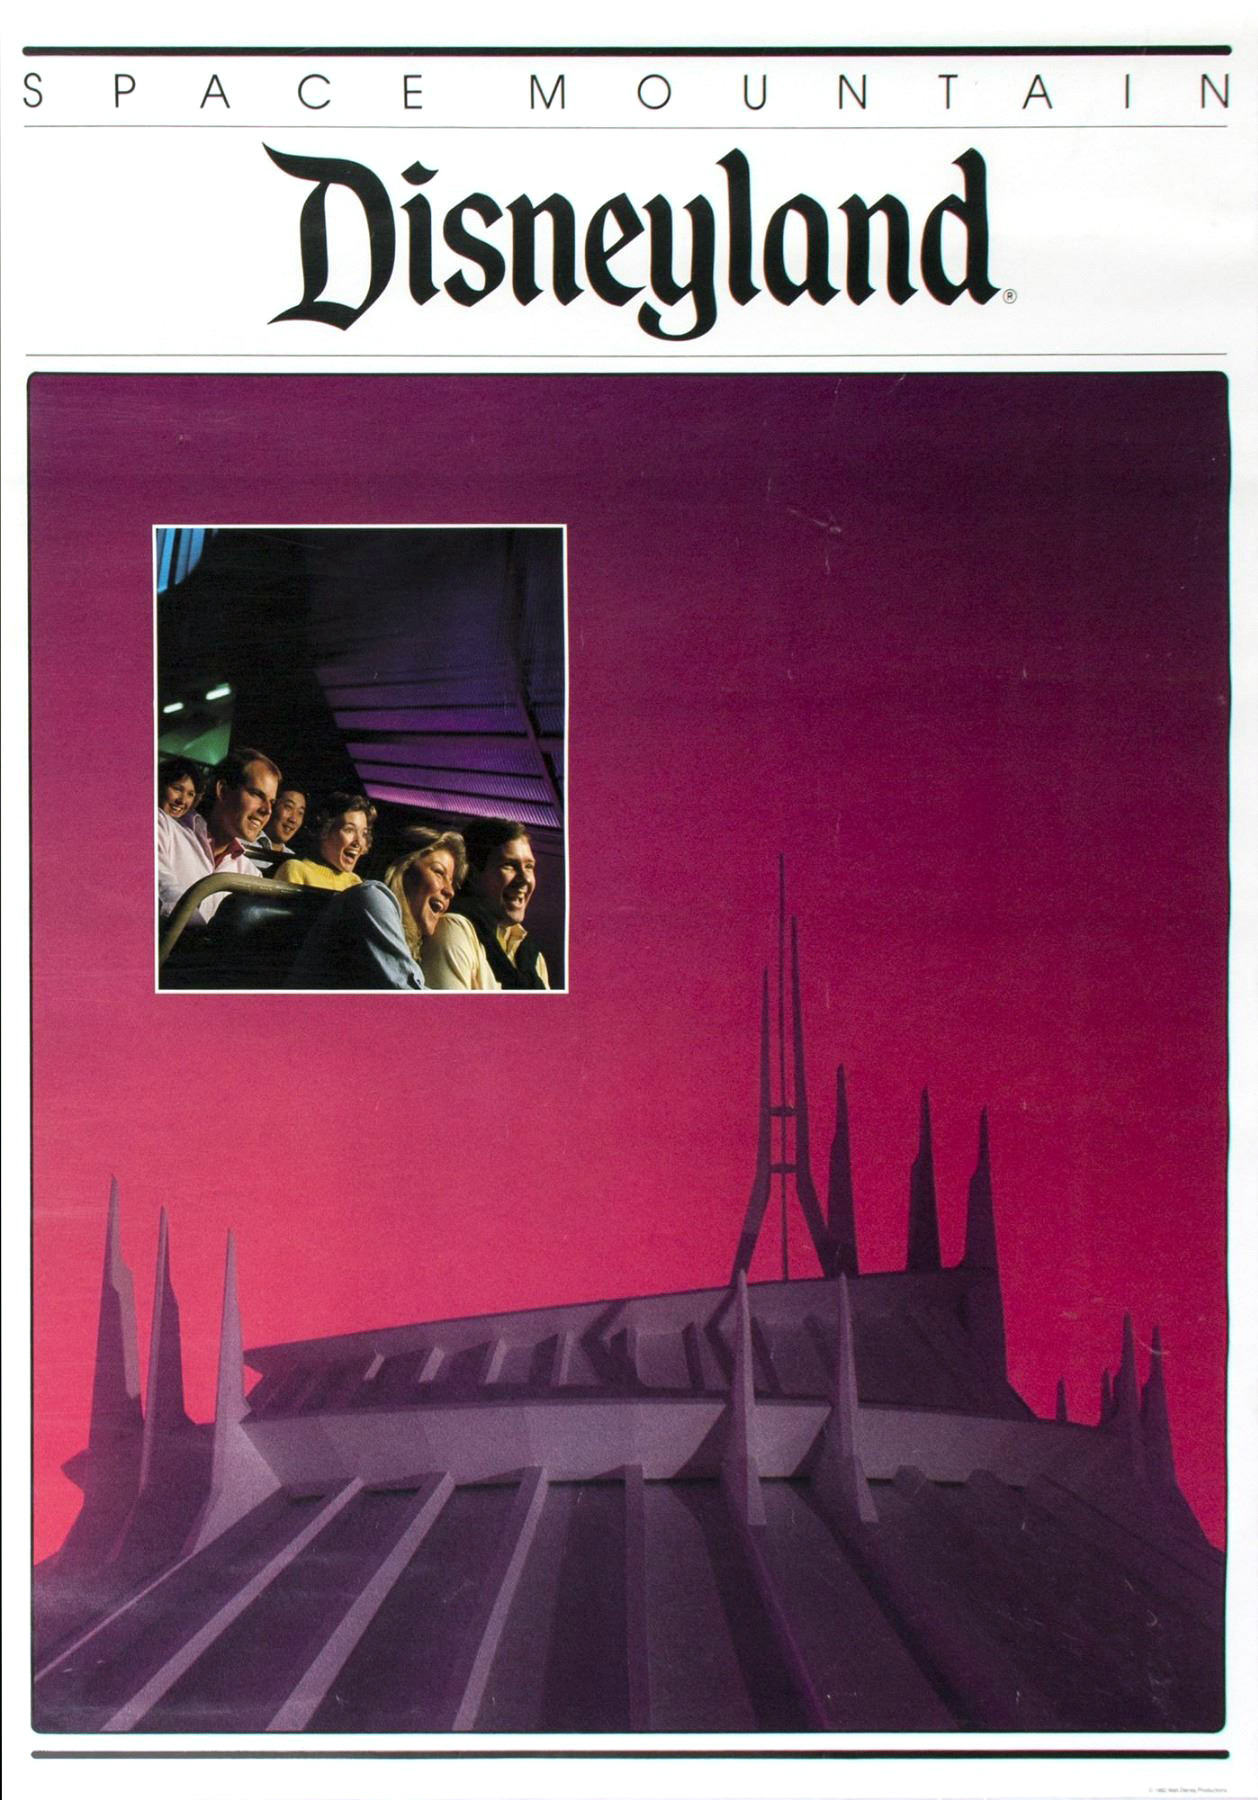 1982 space mountain poster